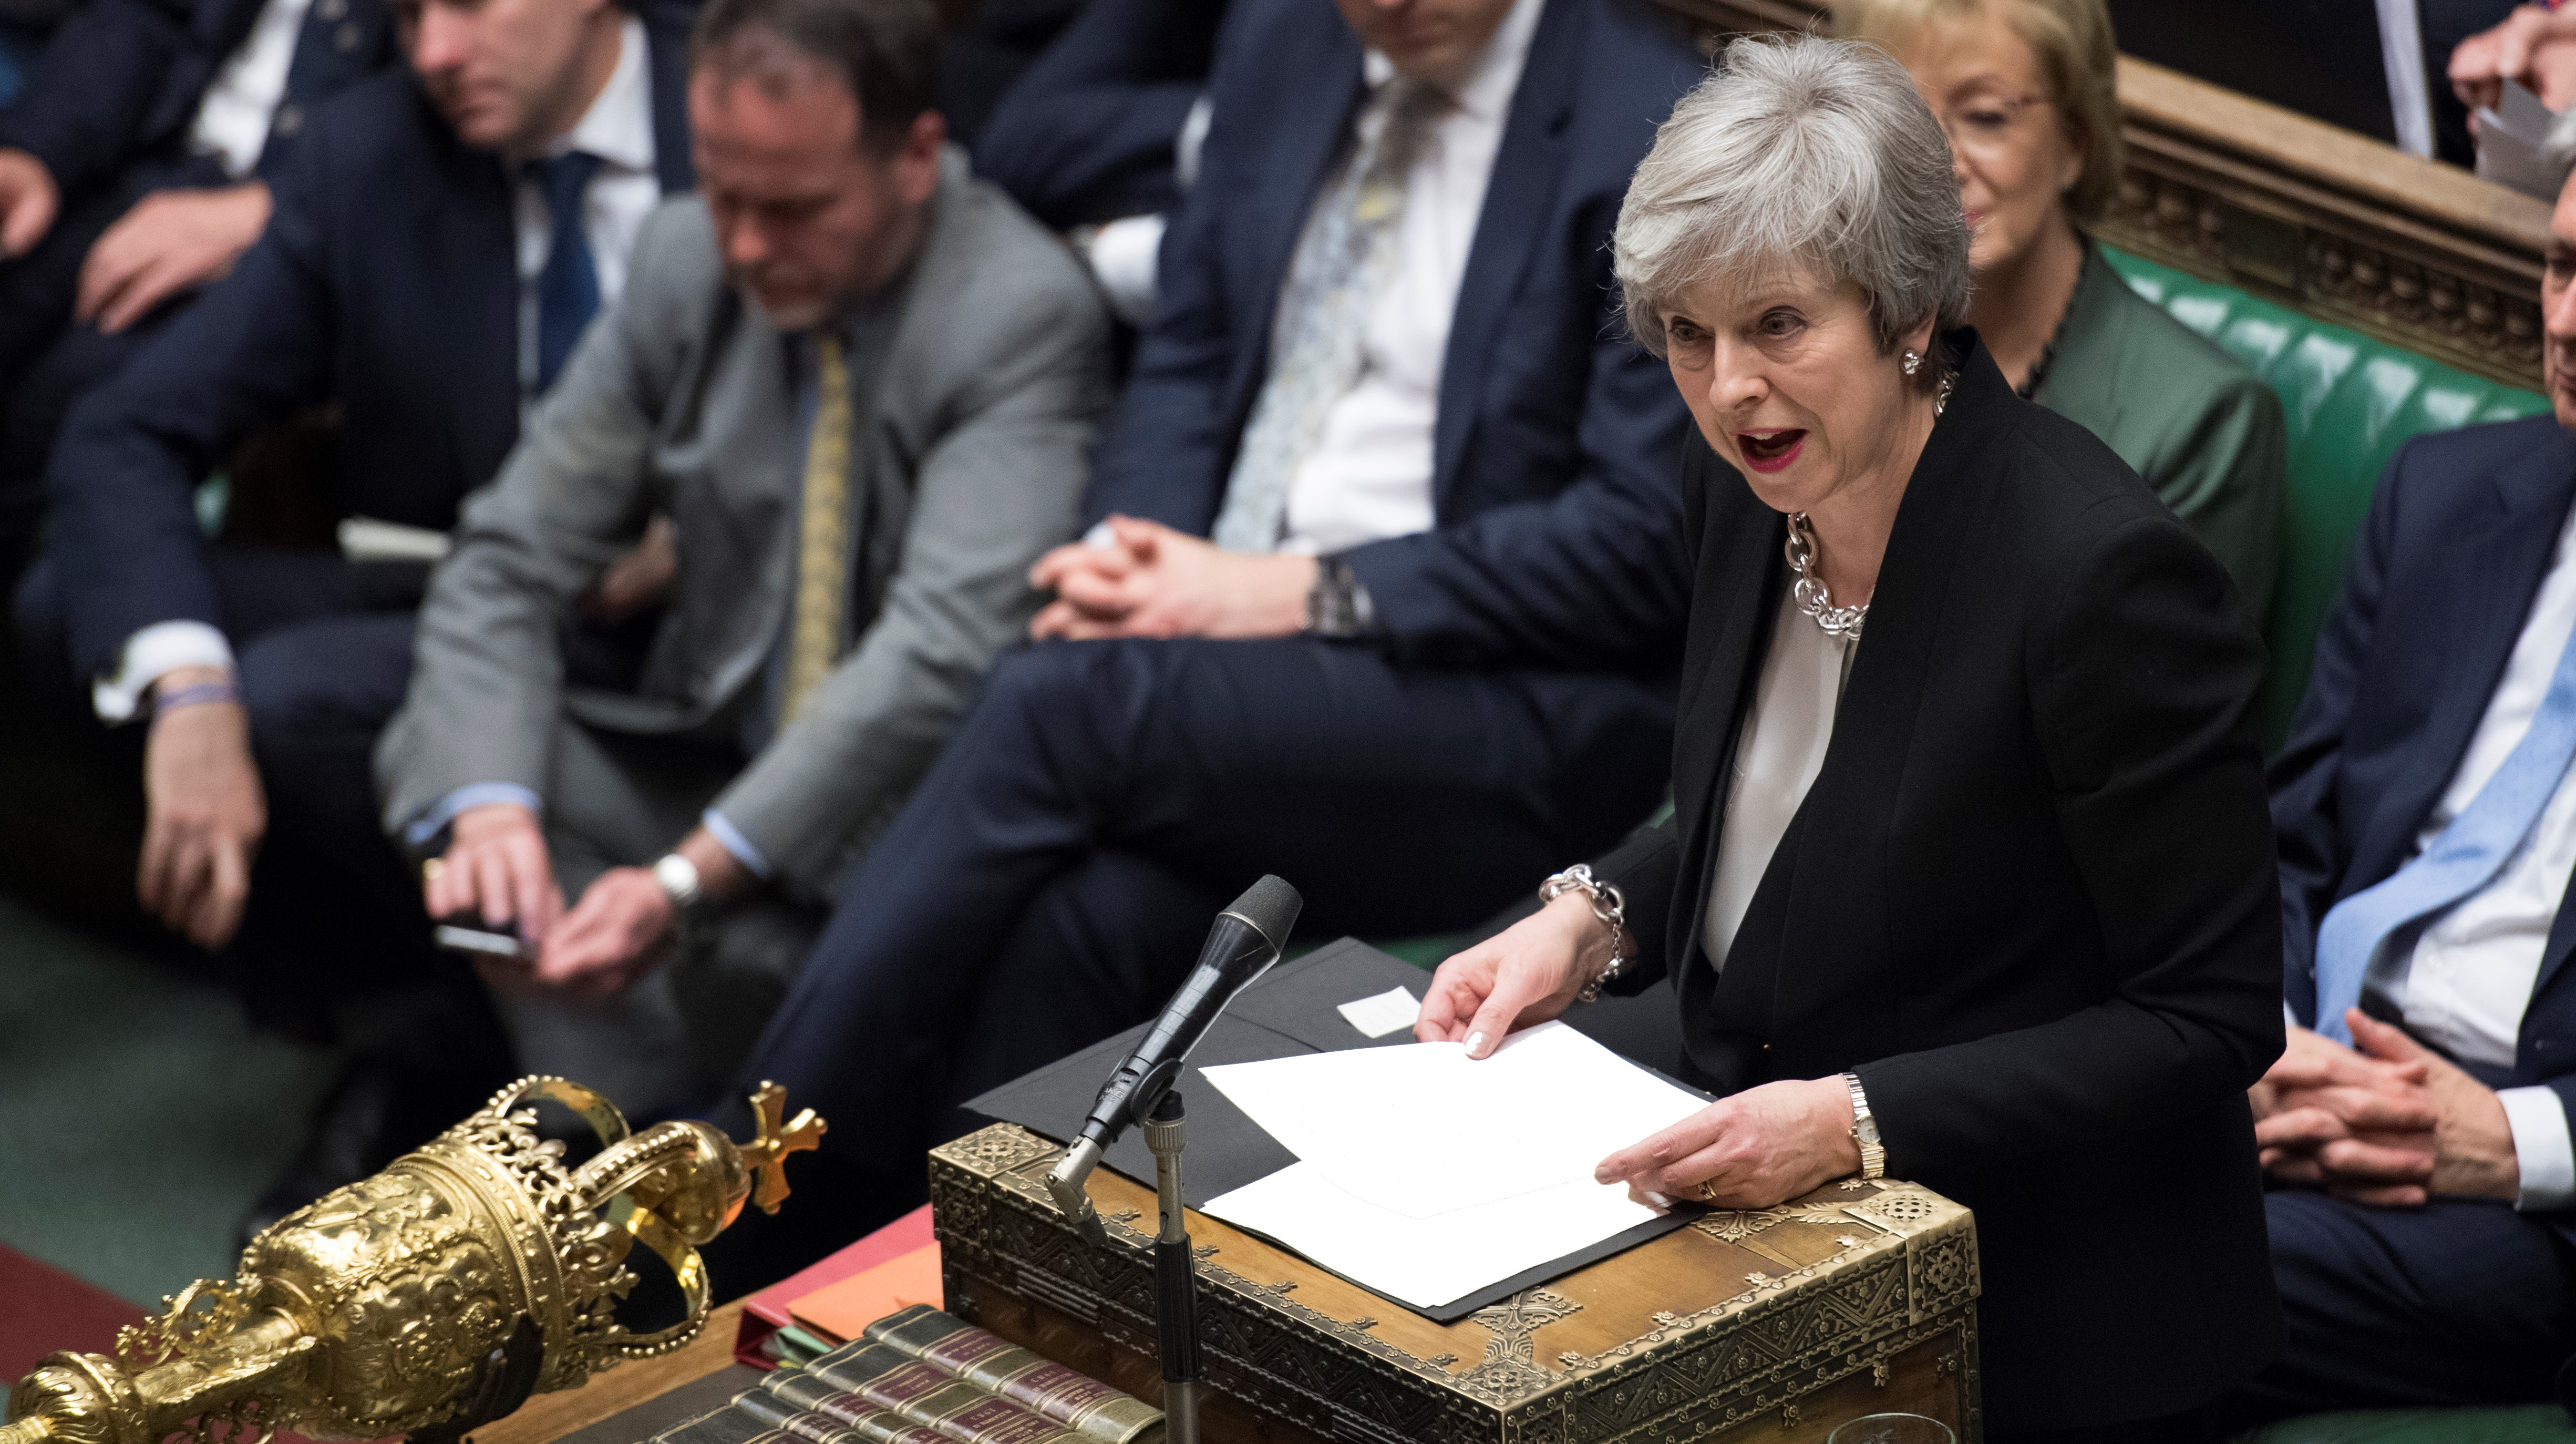 Brexit talks collapse as UK Opposition blames 'weak' Theresa May